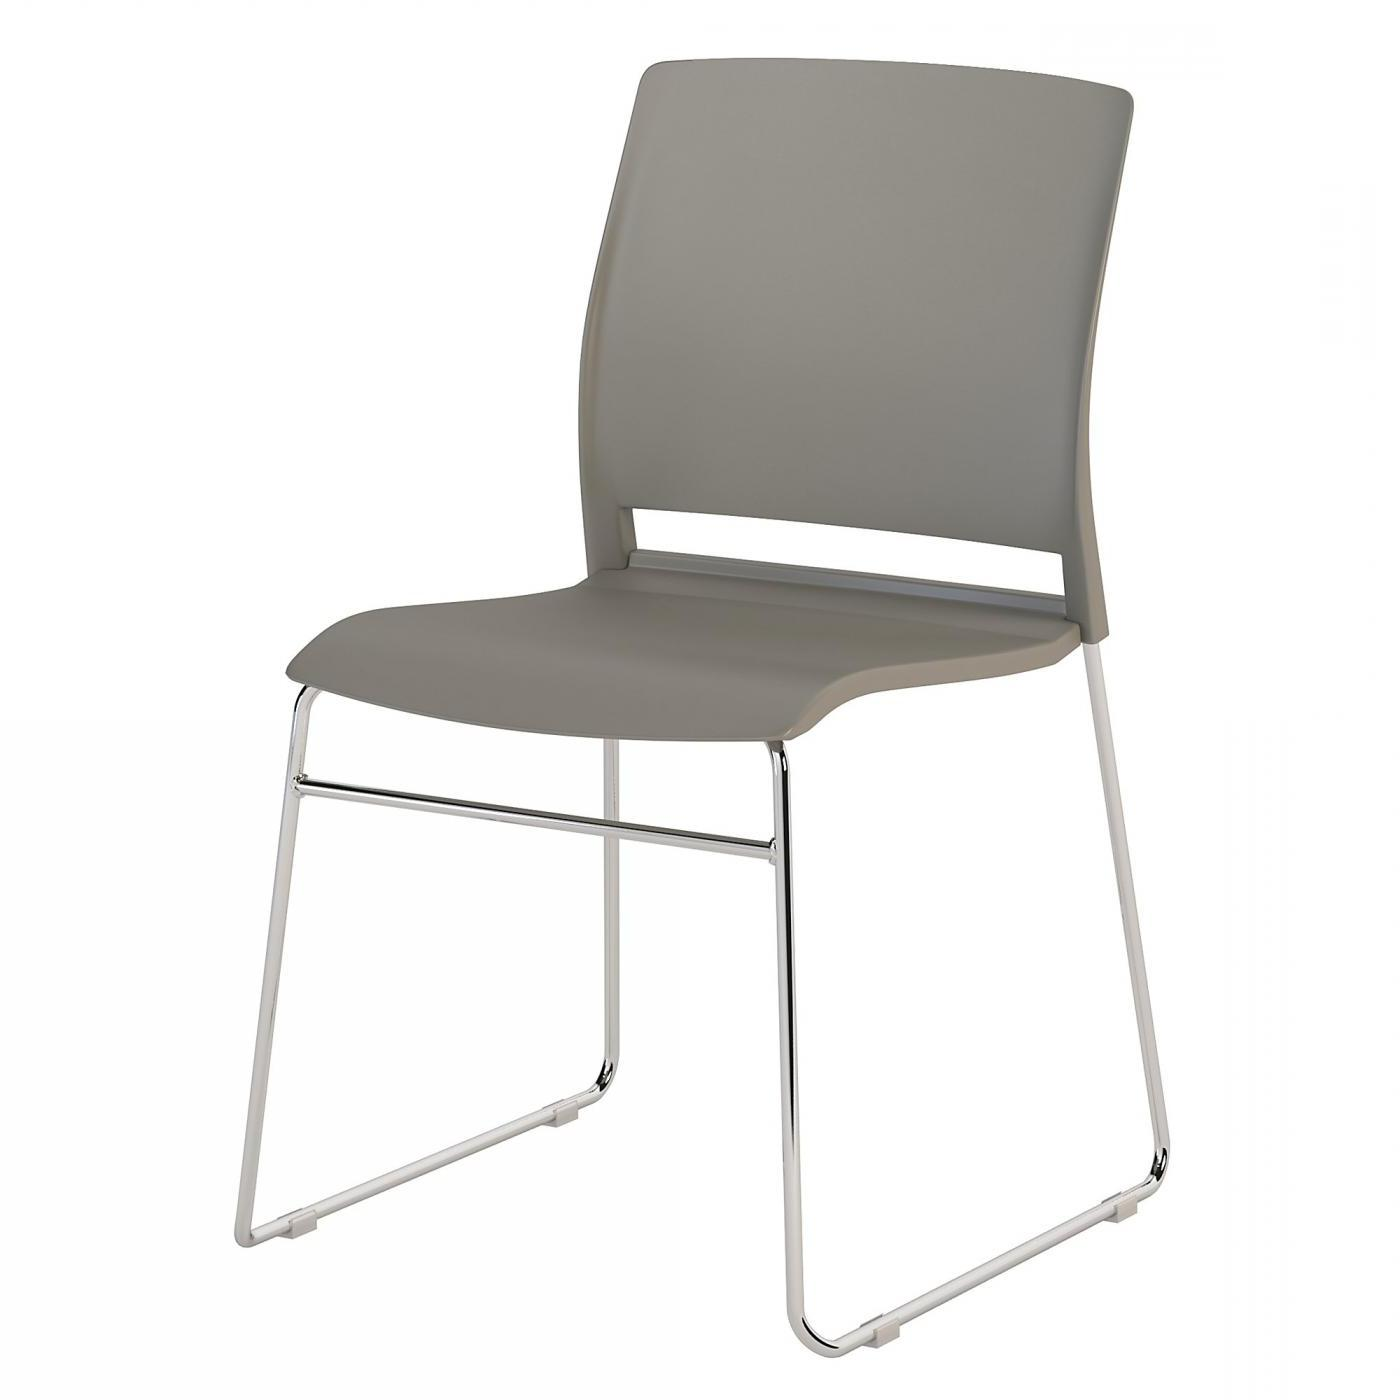 </b></font><b>BUSH BUSINESS FURNITURE CORPORATE STACKABLE CHAIRS SET OF 2. FREE SHIPPING</font>. </b></font></b>